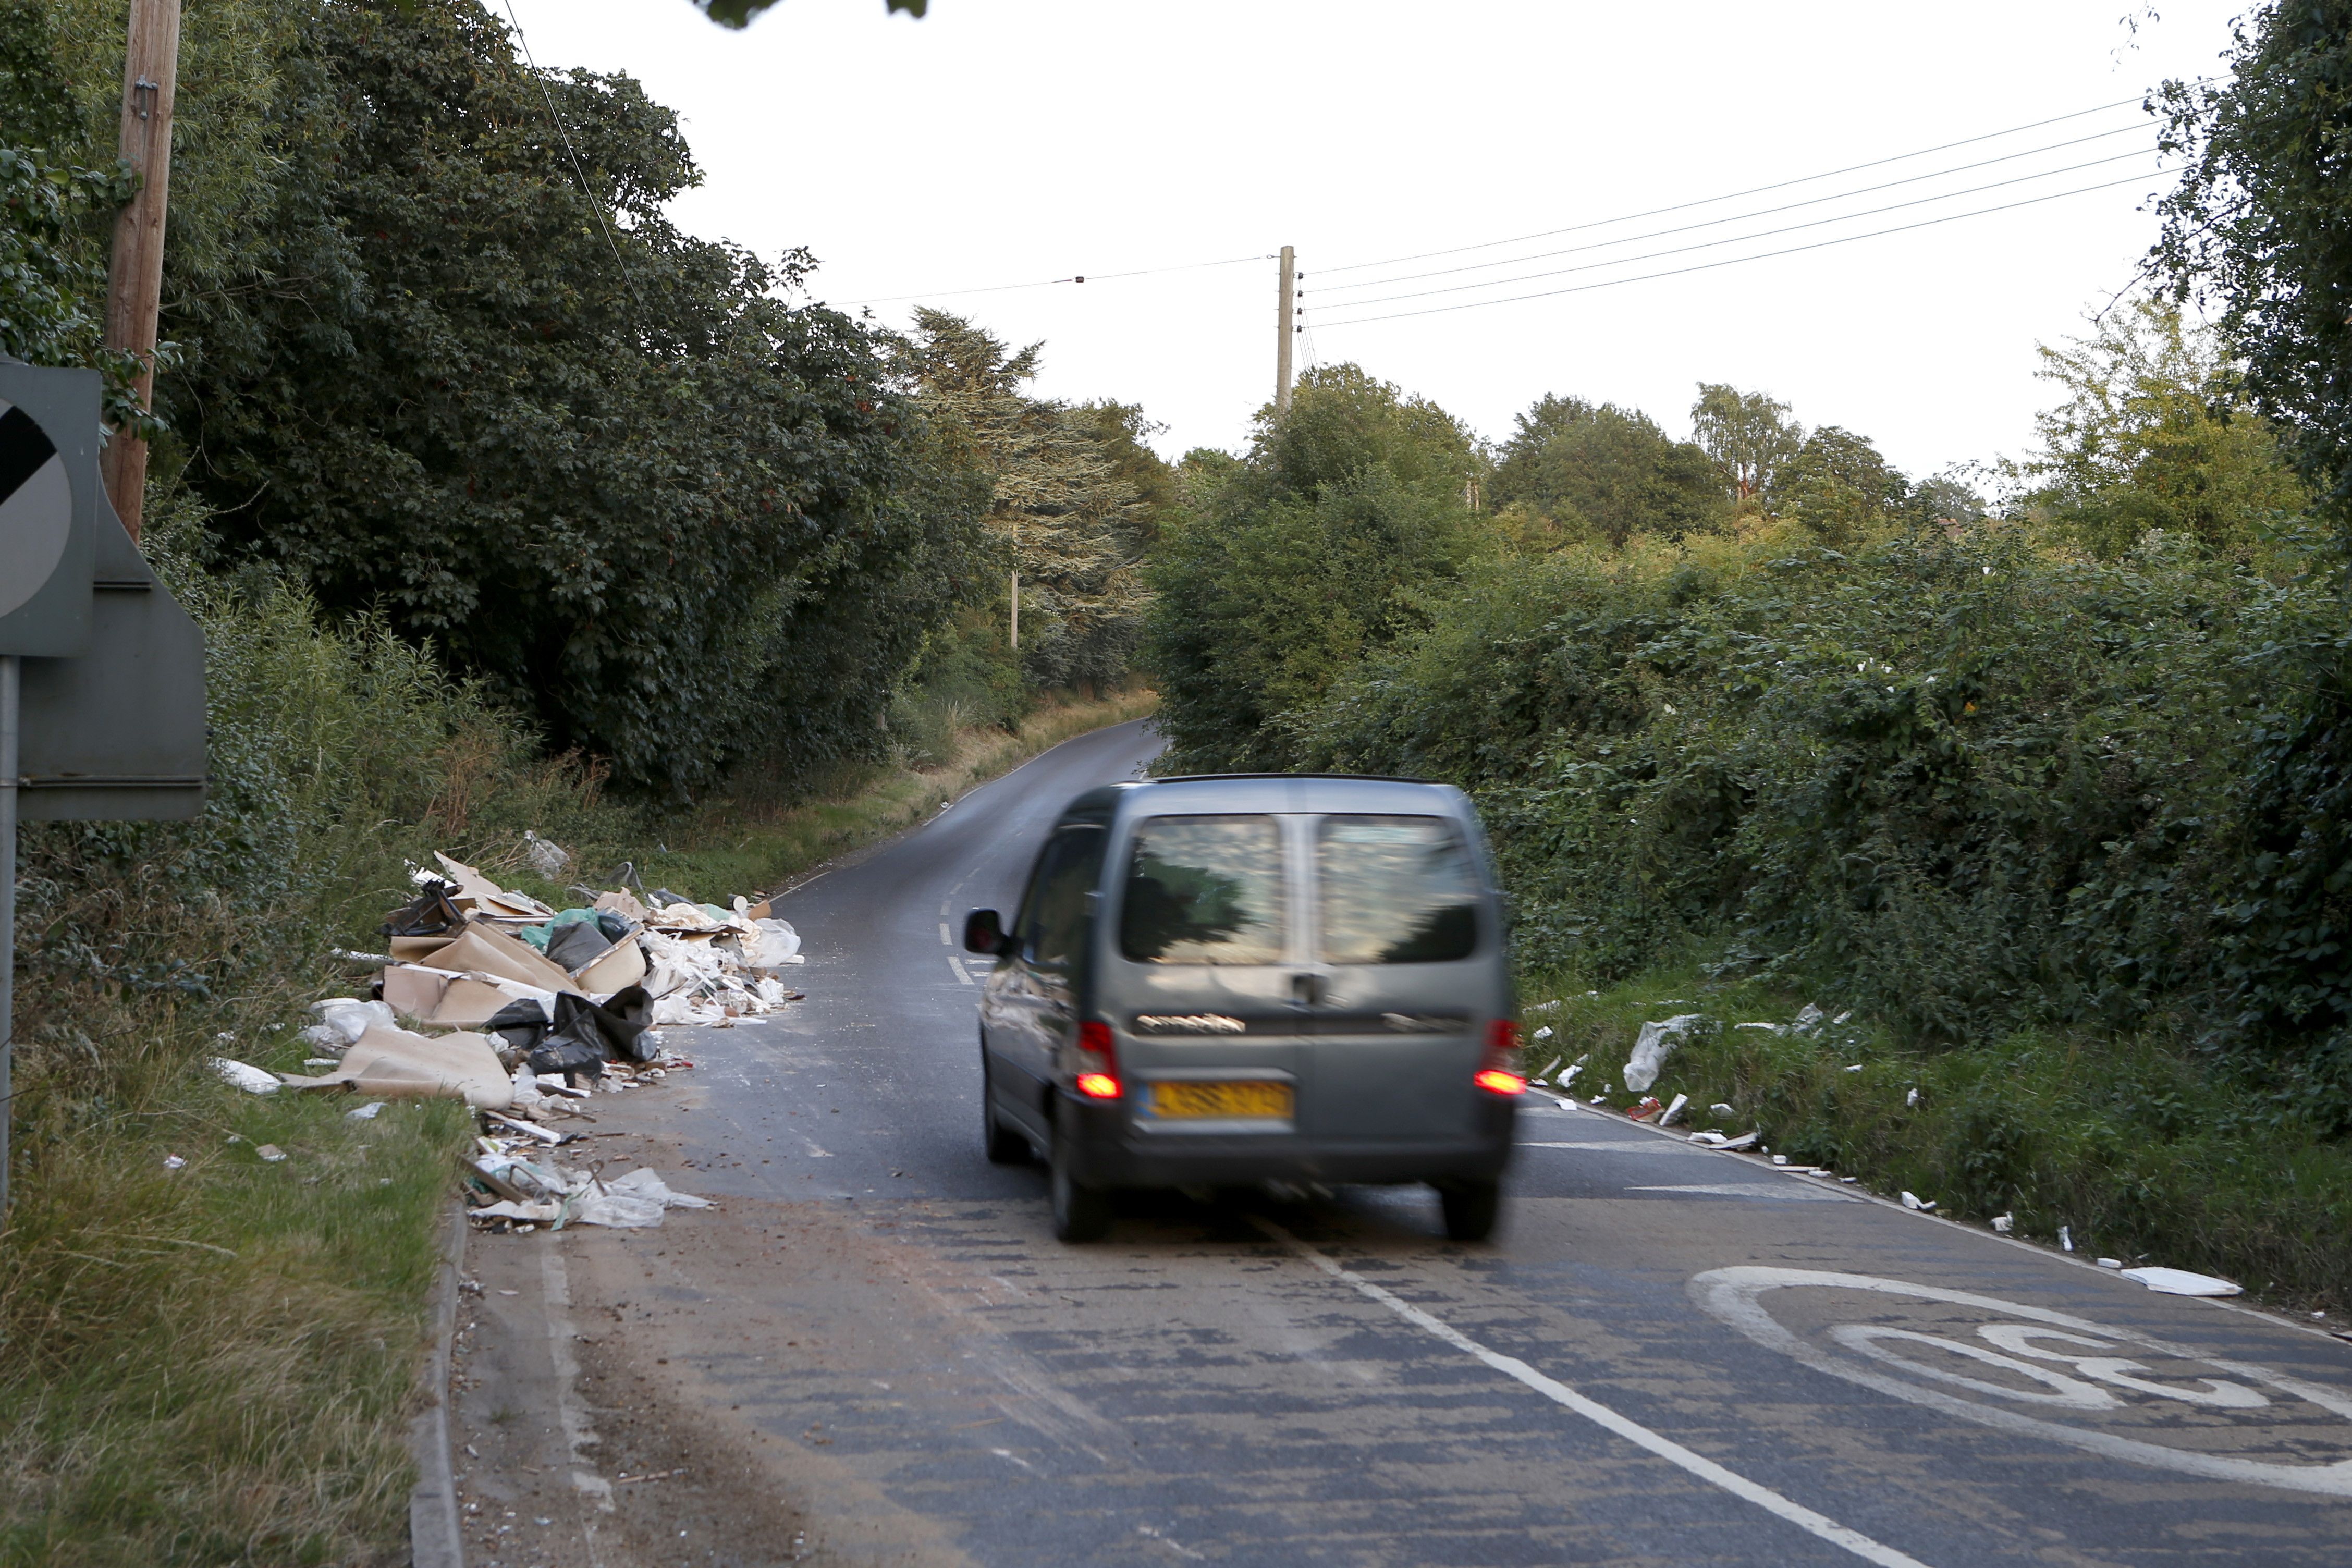 There are fixed penalties for fly-tipping that range from between £200-£400 depending on the circumstances. Photo:  Gary Hawkins/Rex/Shutterstock